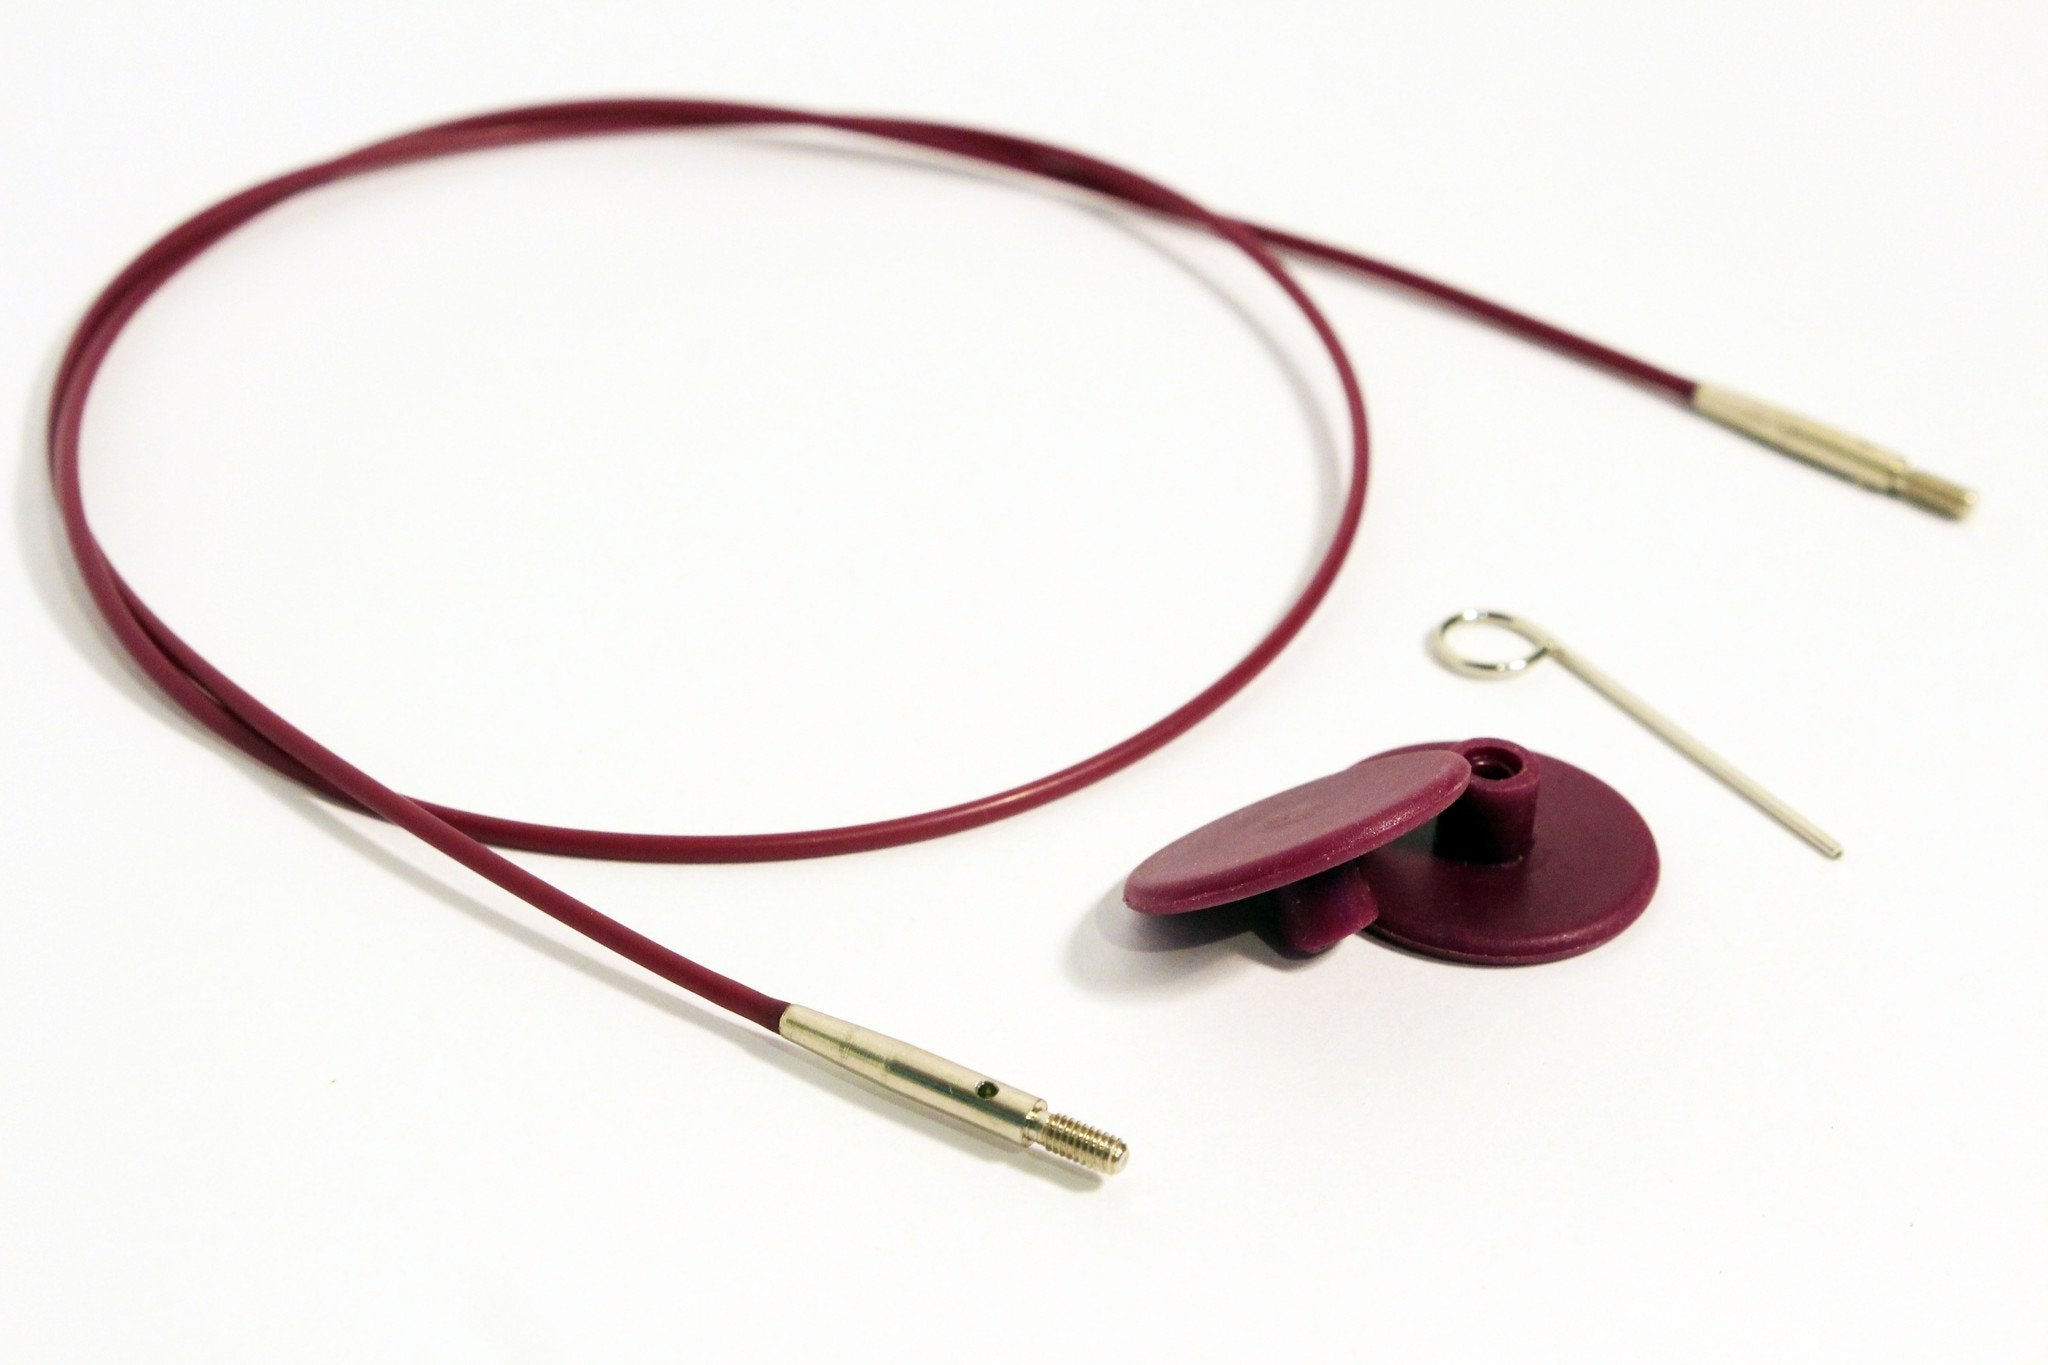 Needles | Knit Pro Symphonie Interchangable Cables